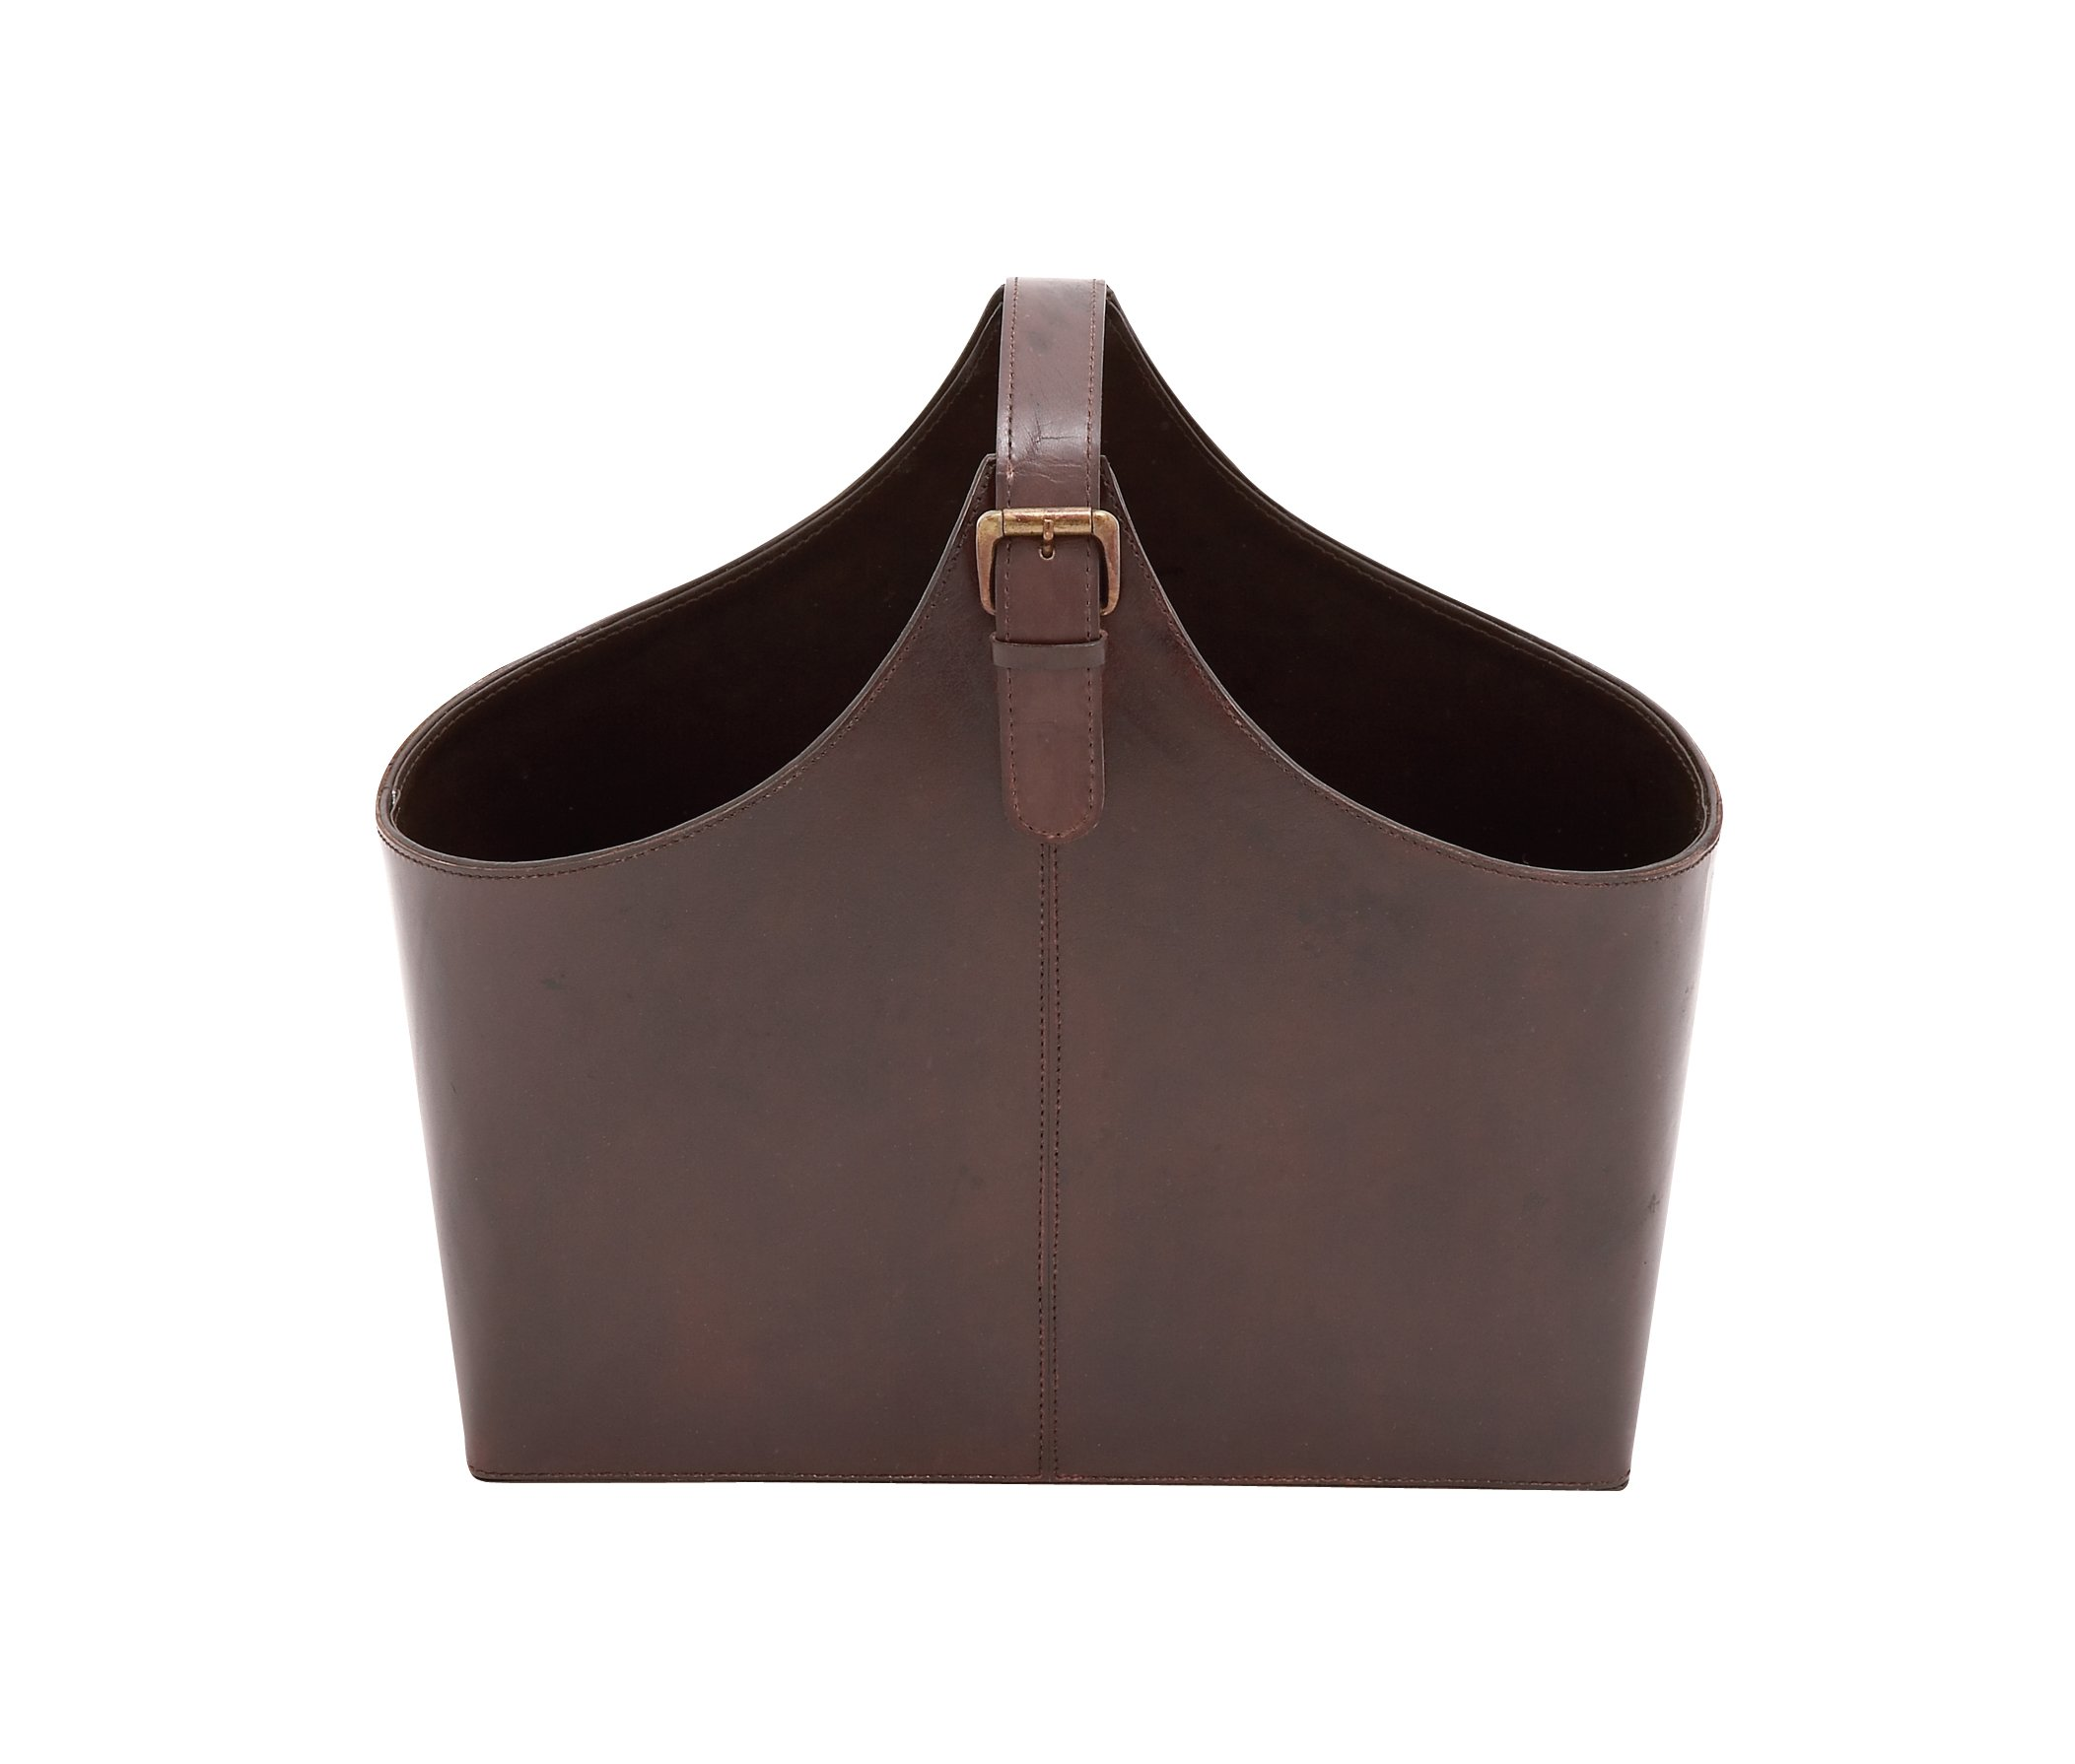 Deco 79 Wood Real Leather Magazine Holder, 16 by 14-Inch, Dark Brown